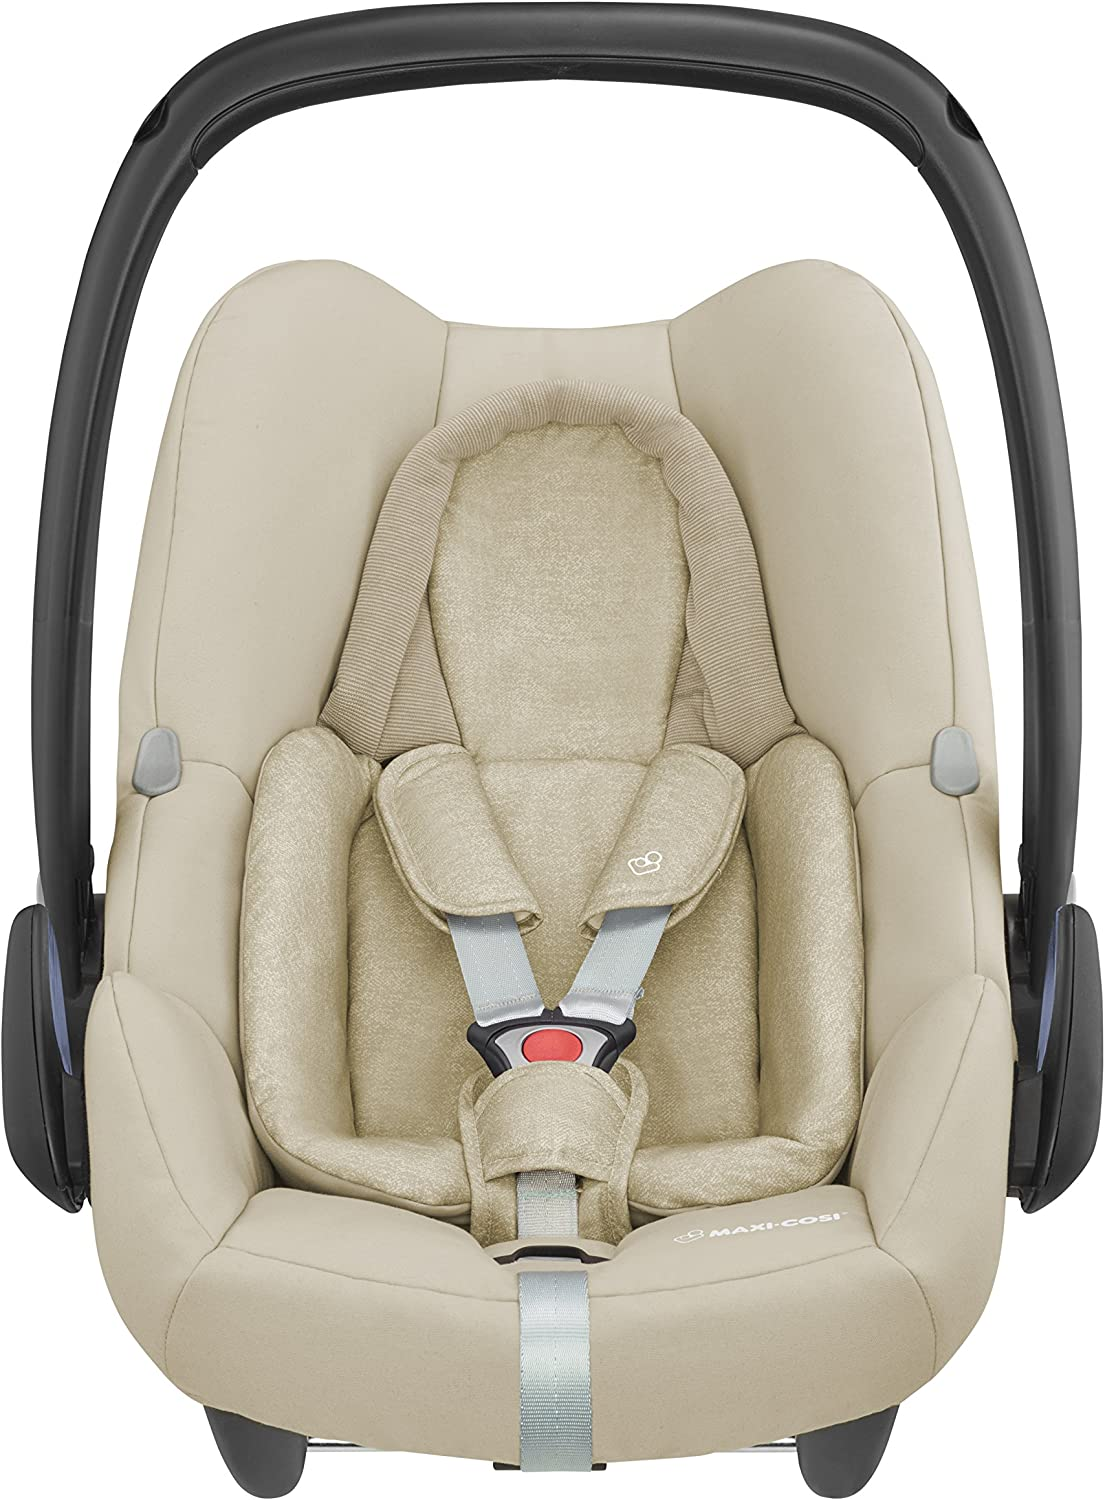 i-Size Car Seat 0-13 kg 0-12 m Essential Graphite ISOFIX Maxi-Cosi Rock Baby Car Seat Group 0+ Rearward-Facing